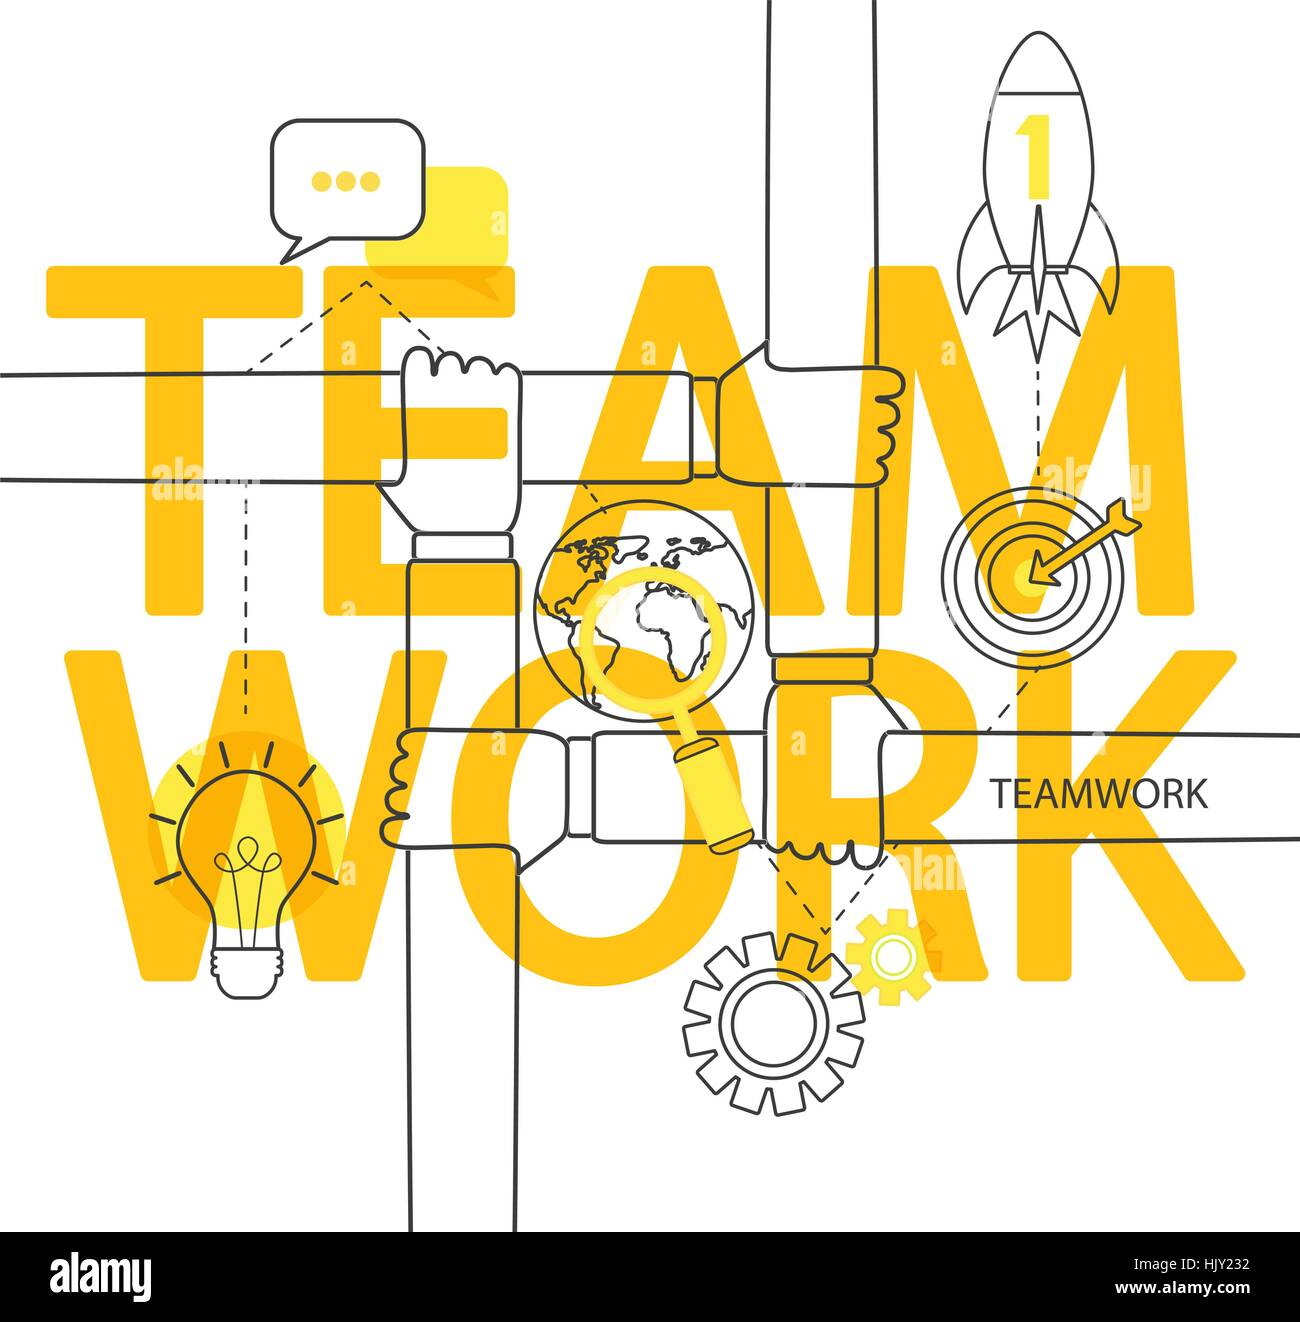 Modern thin line infographic of teamwork concept. For web, internet, mobile apps, interface design. - Stock Image